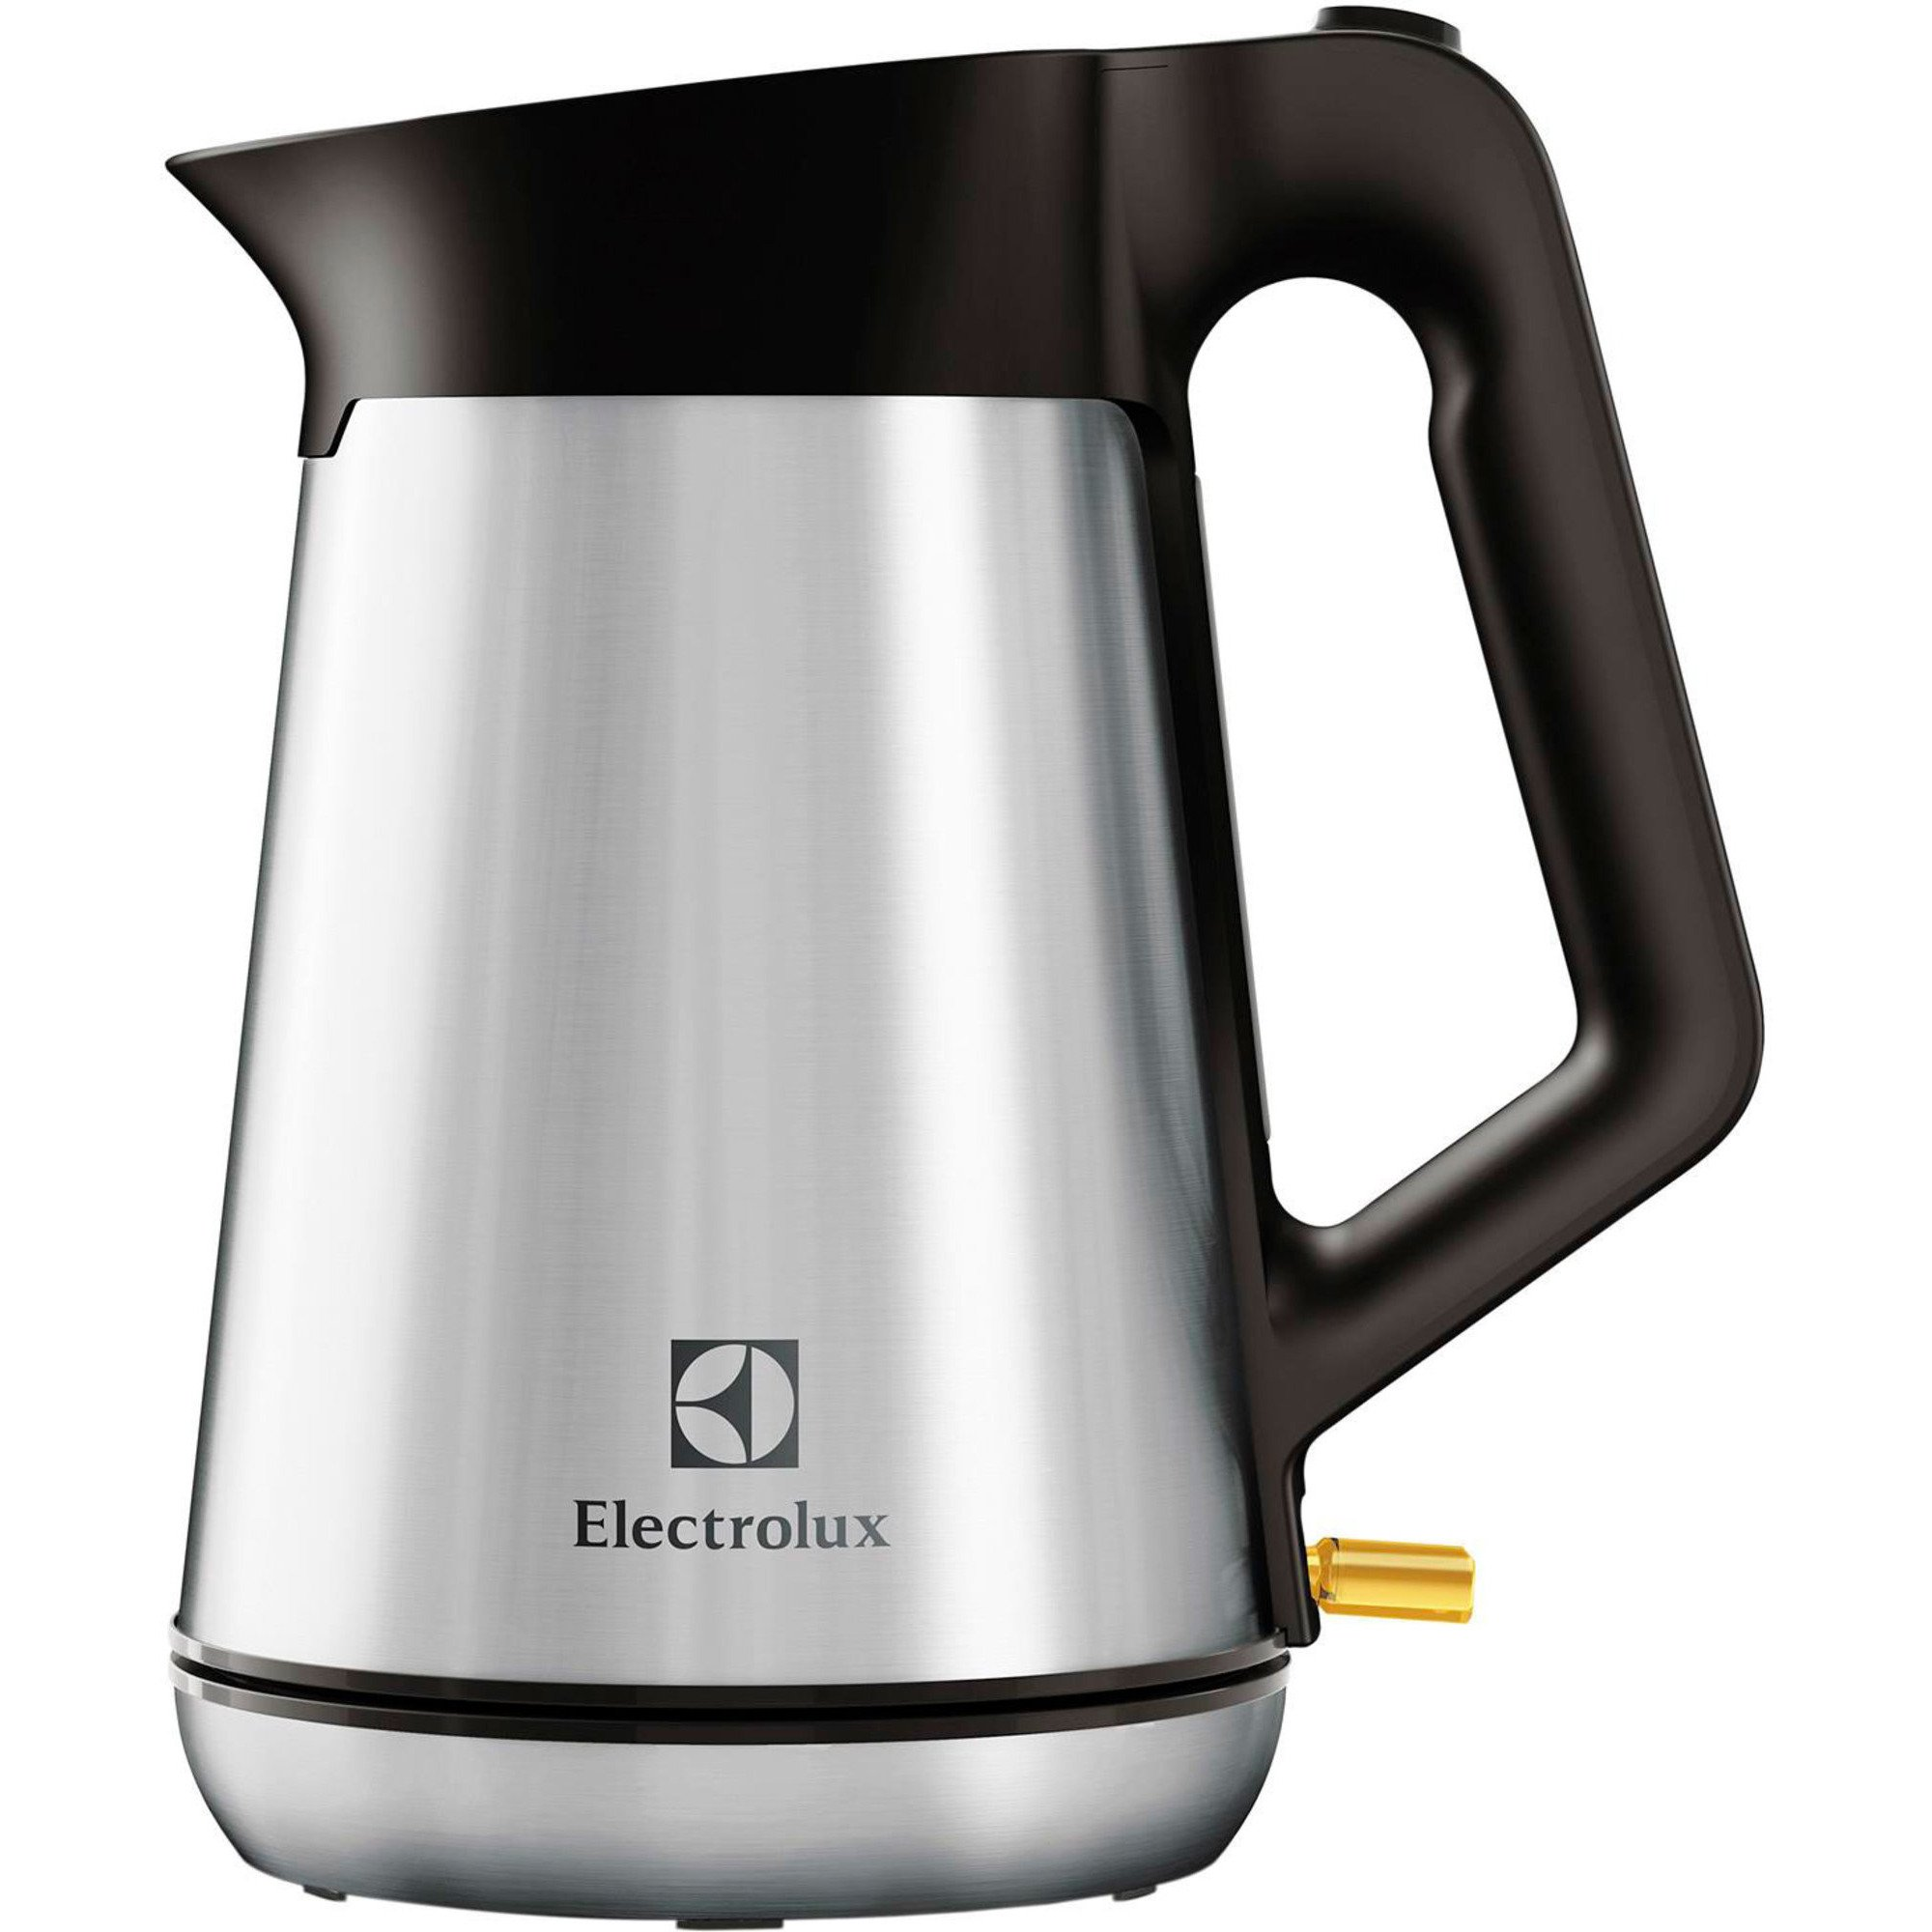 Electrolux Vattenkokare Creative collection EEWA5300, Rostfri